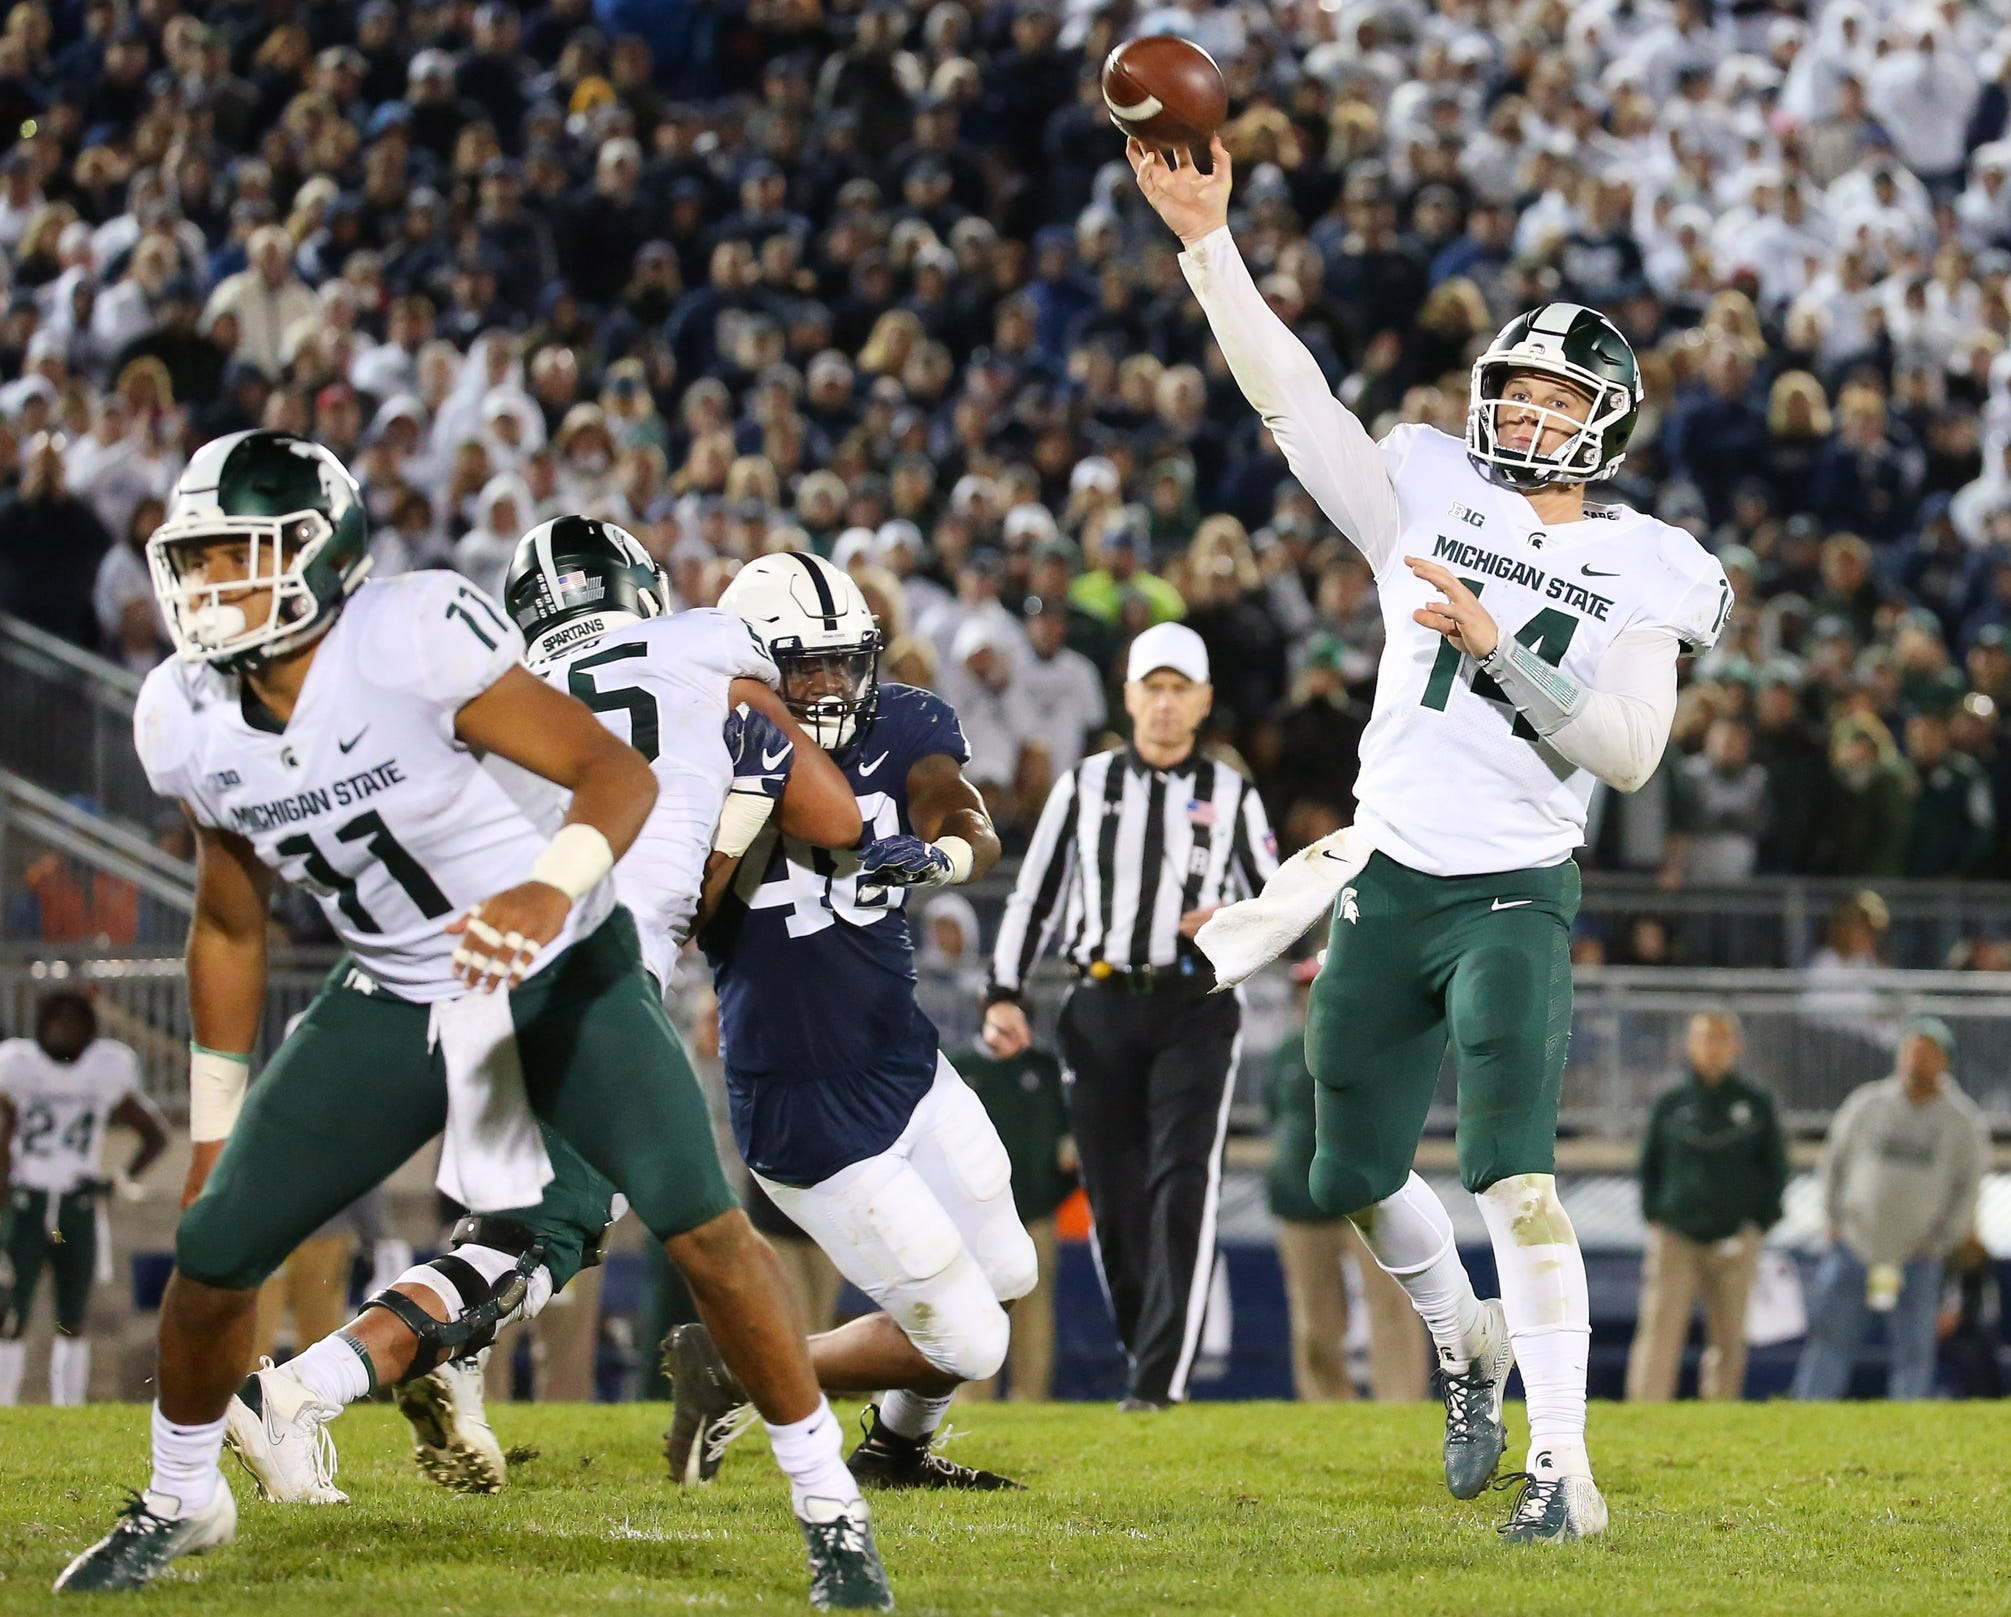 Michigan State quarterback Brian Lewerke passes the ball for the winning touchdown to wide receiver Felton Davis III (not pictured) during the fourth quarter of MSU's 21-17 win on Saturday, Oct. 13, 2018, in University Park, Pa.